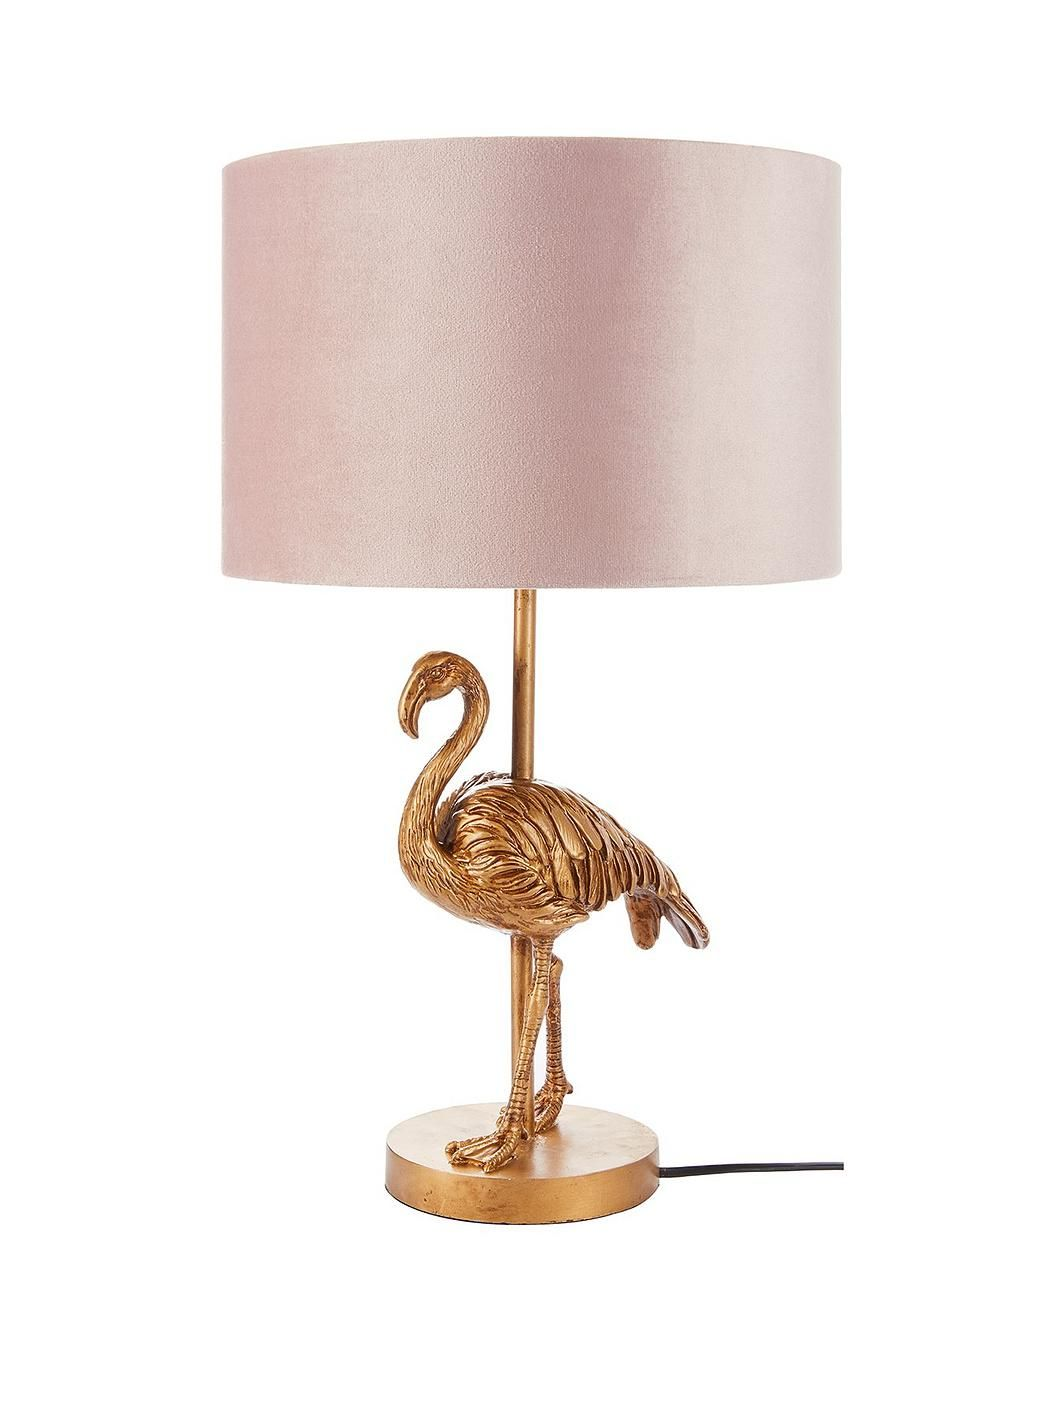 Michelle Keegan Home Flamingo Table Lamp in 2020 Table